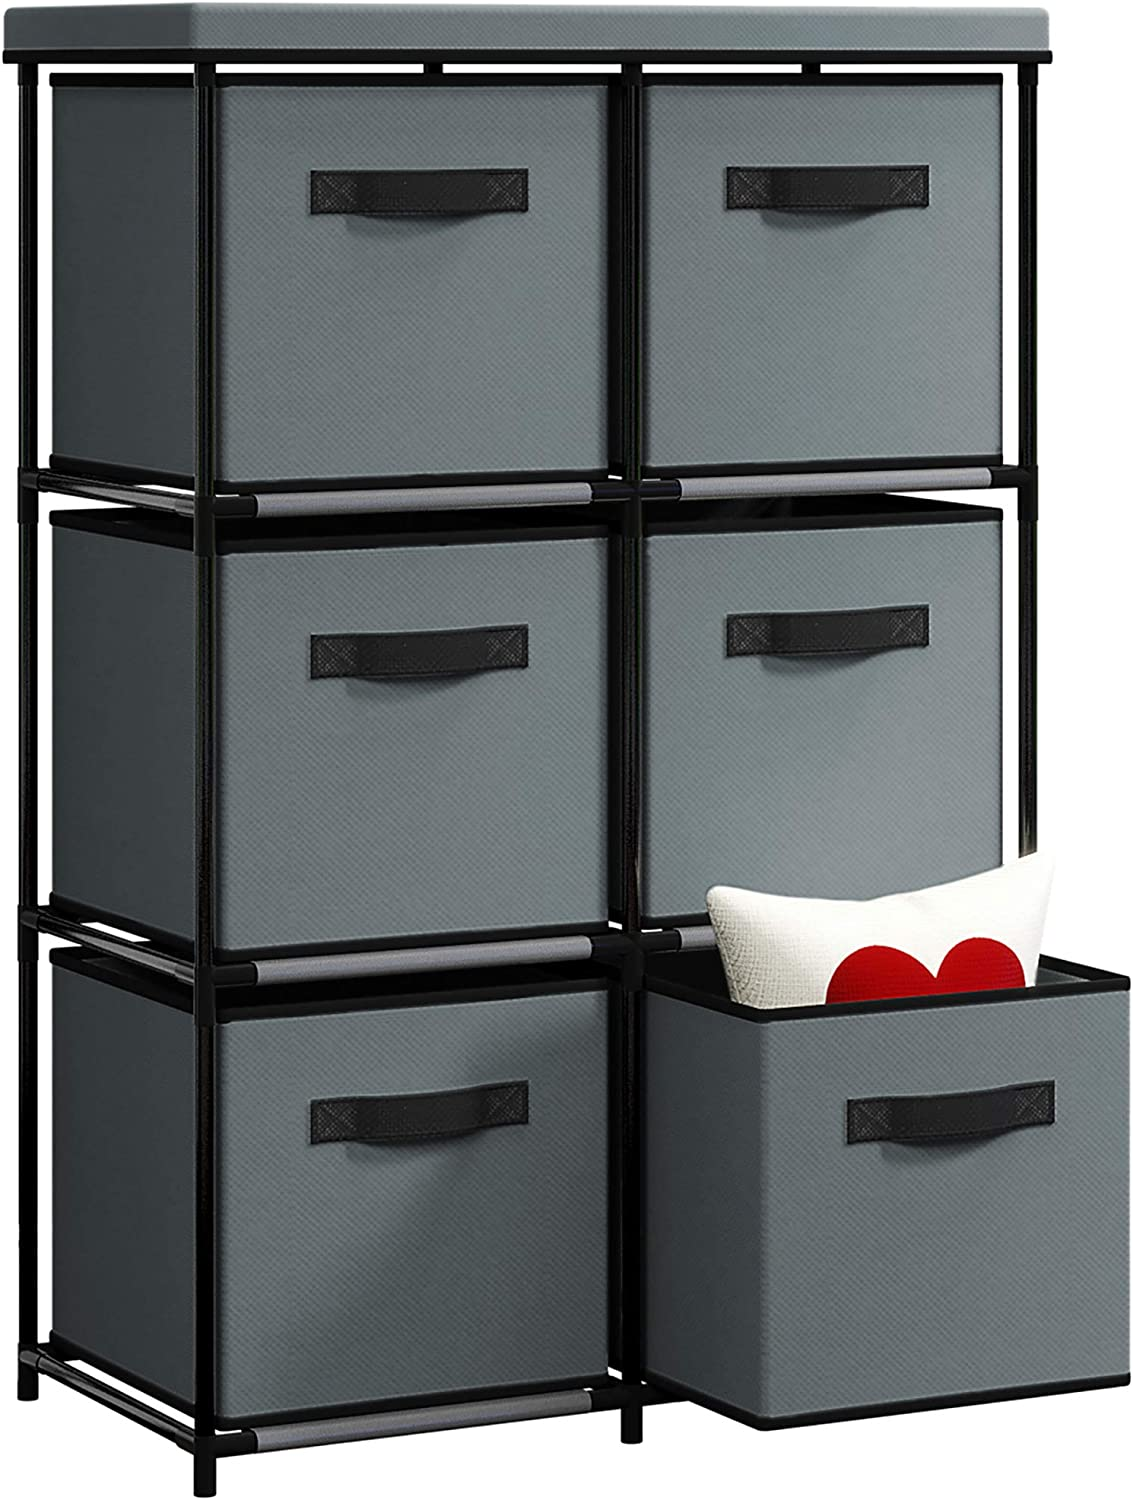 HOME BI 6 Drawer Dresser Storage Organizer, Fabric Dresser with Large Capacity, Organizer Unit for Bedroom Living Room, Sturdy Steel Frame with Easy Pull Fabric Bins for Clothing (Grey)